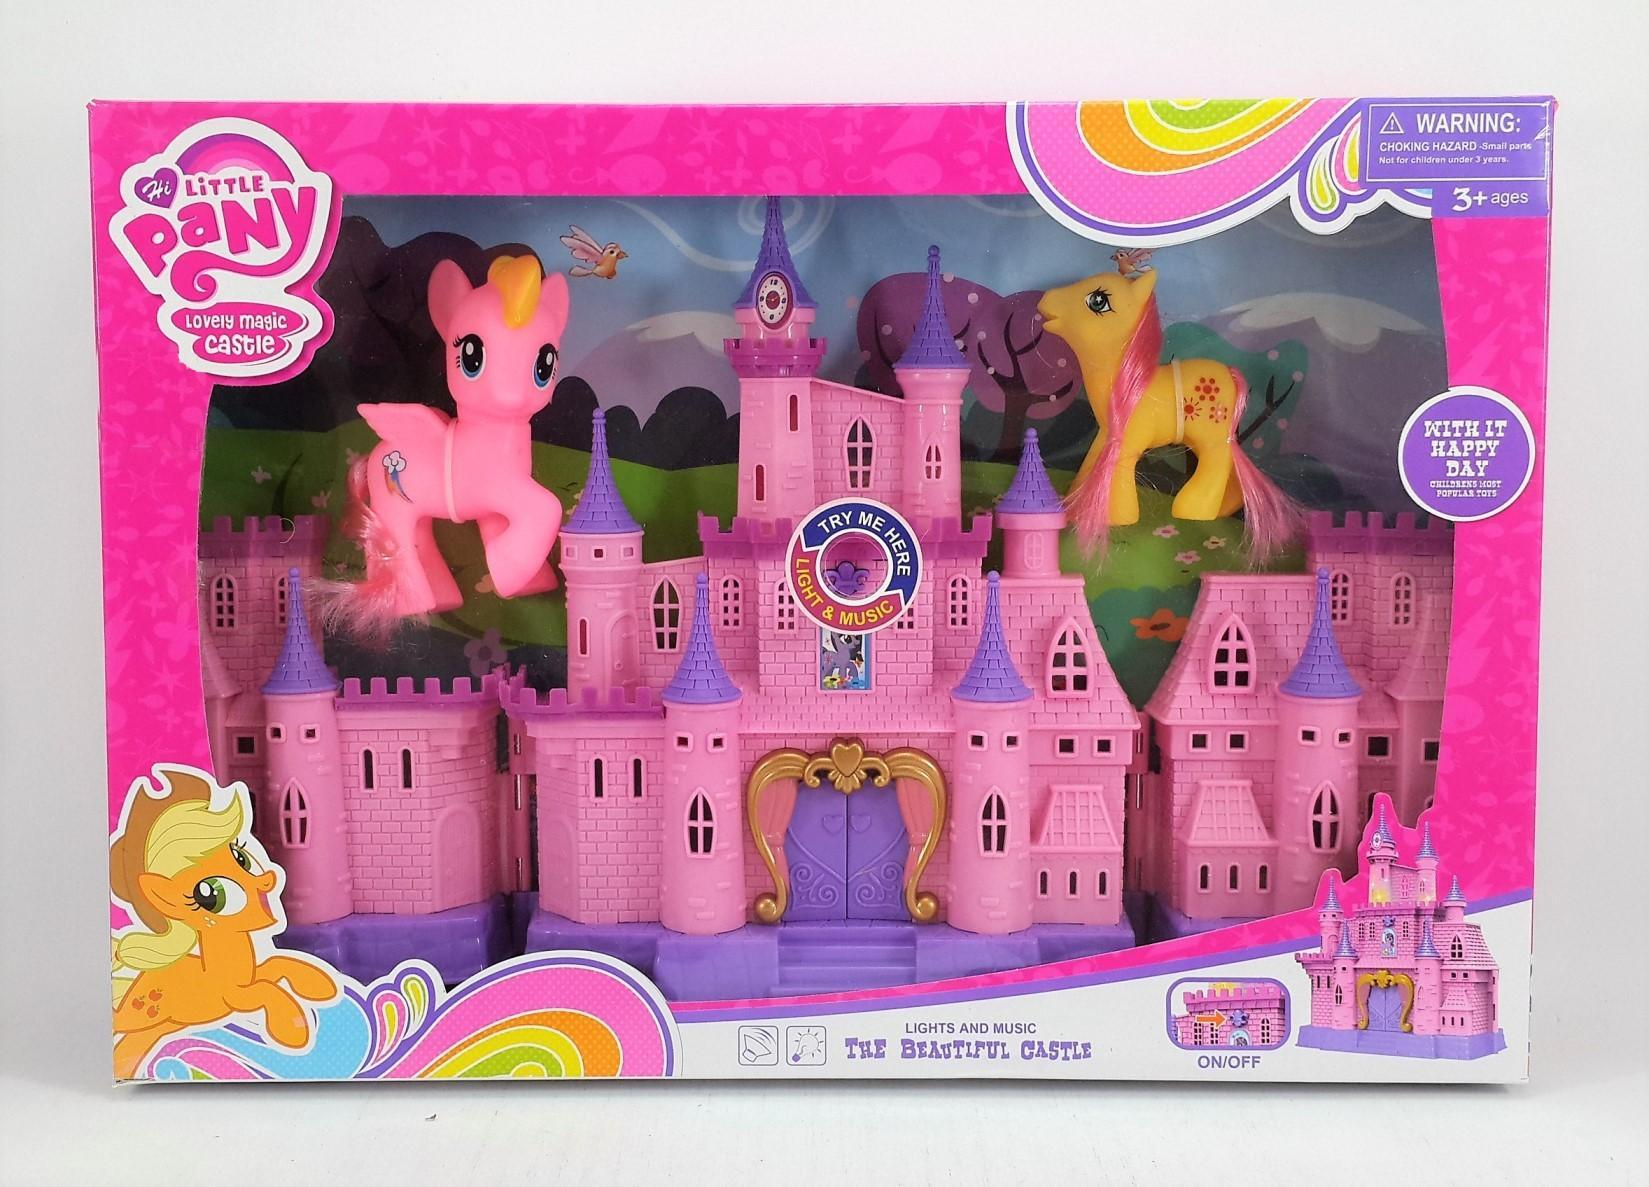 Mesh Mainan Anak Perempuan My Little PONY LOVELY MAGIC CASTLE - Mainan  rumah Istana My Little e6d734941a